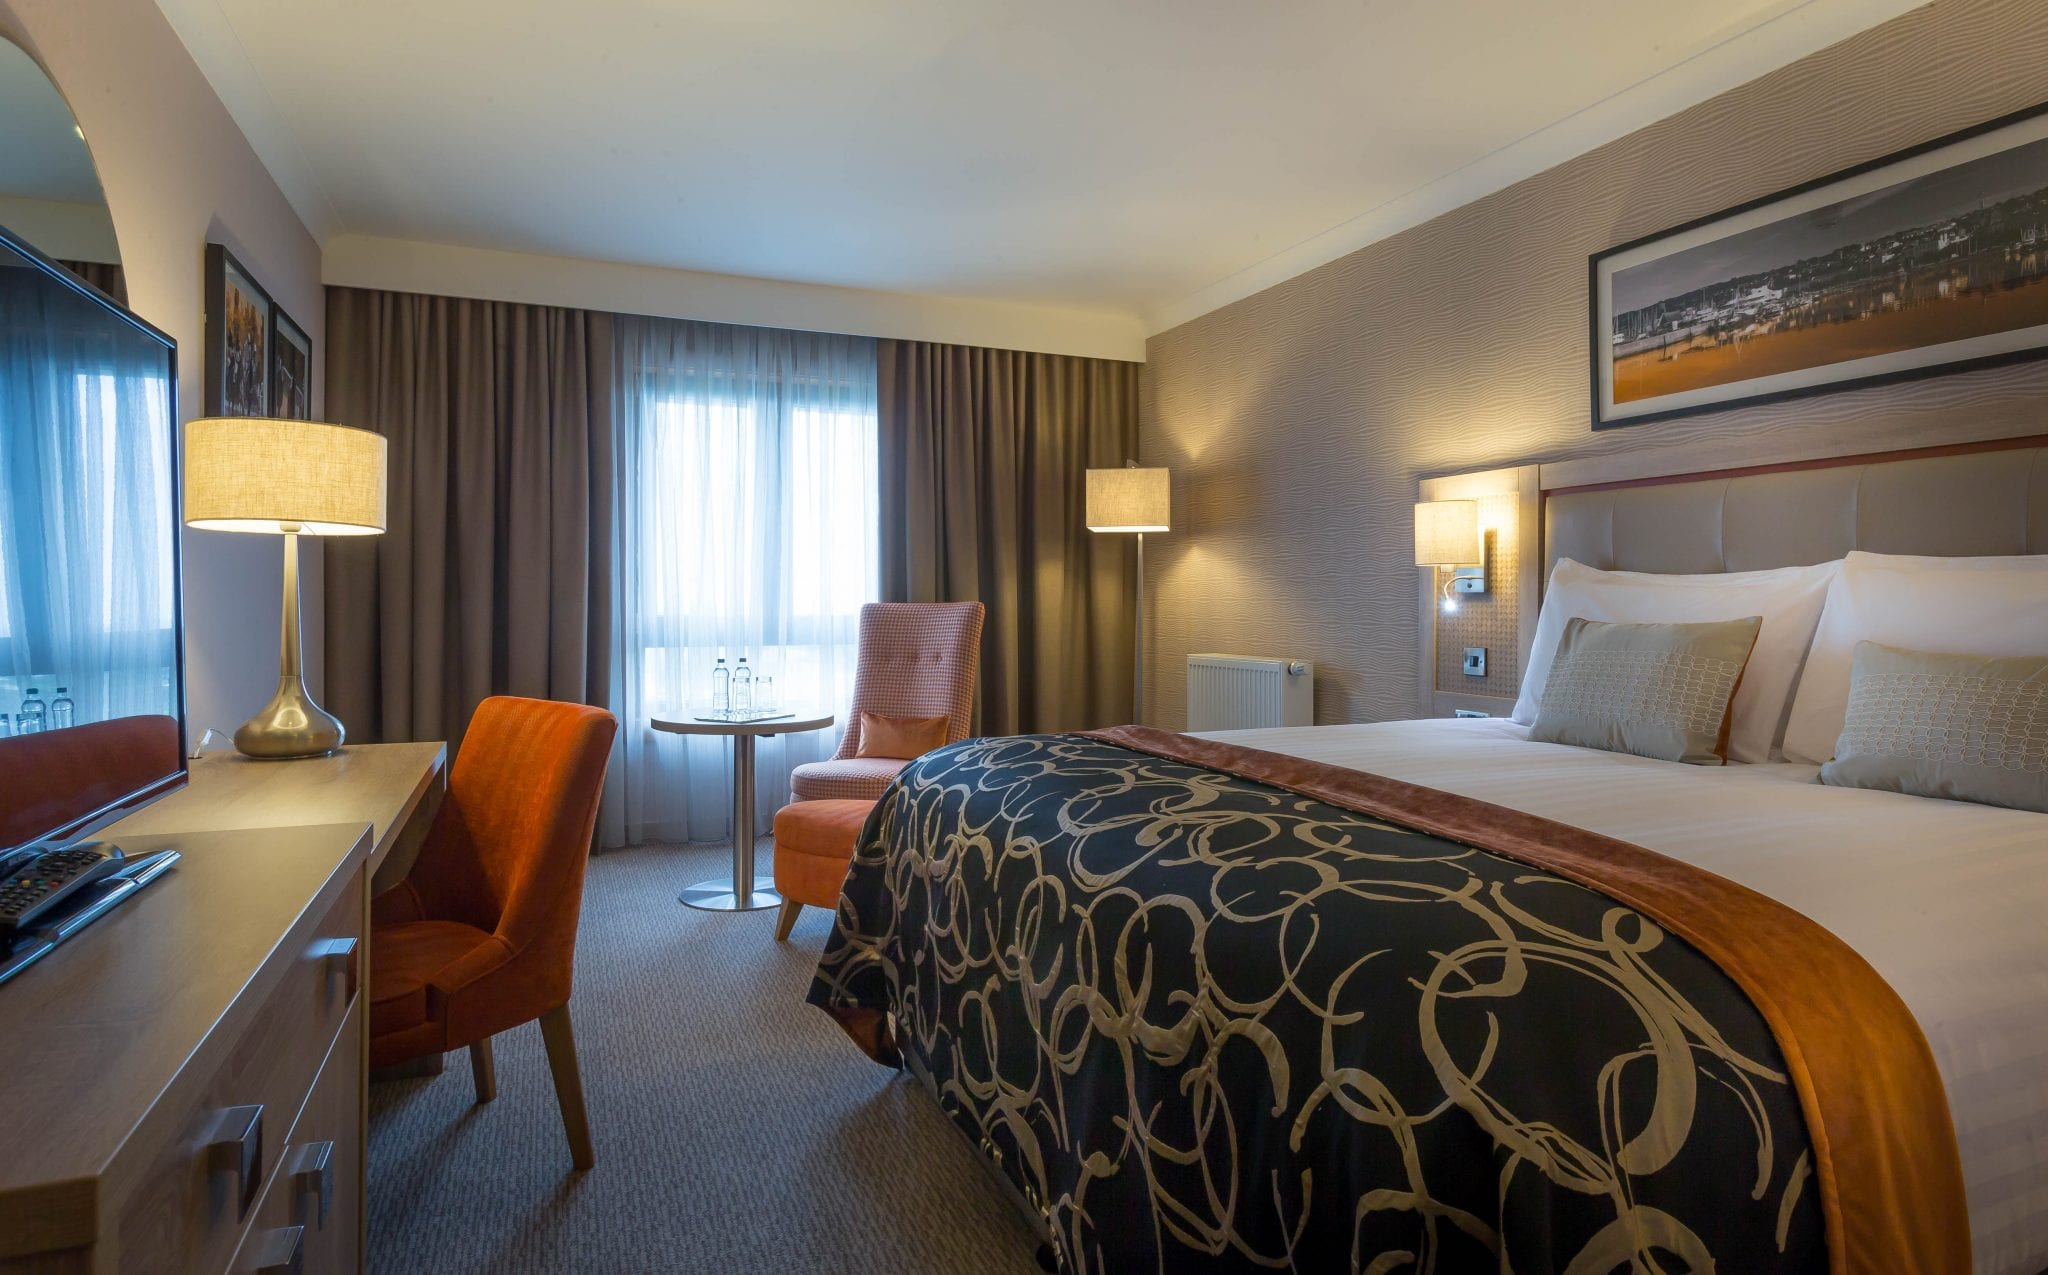 Hotels In Galway 4 Star Hotel Clayton Hotel Galway